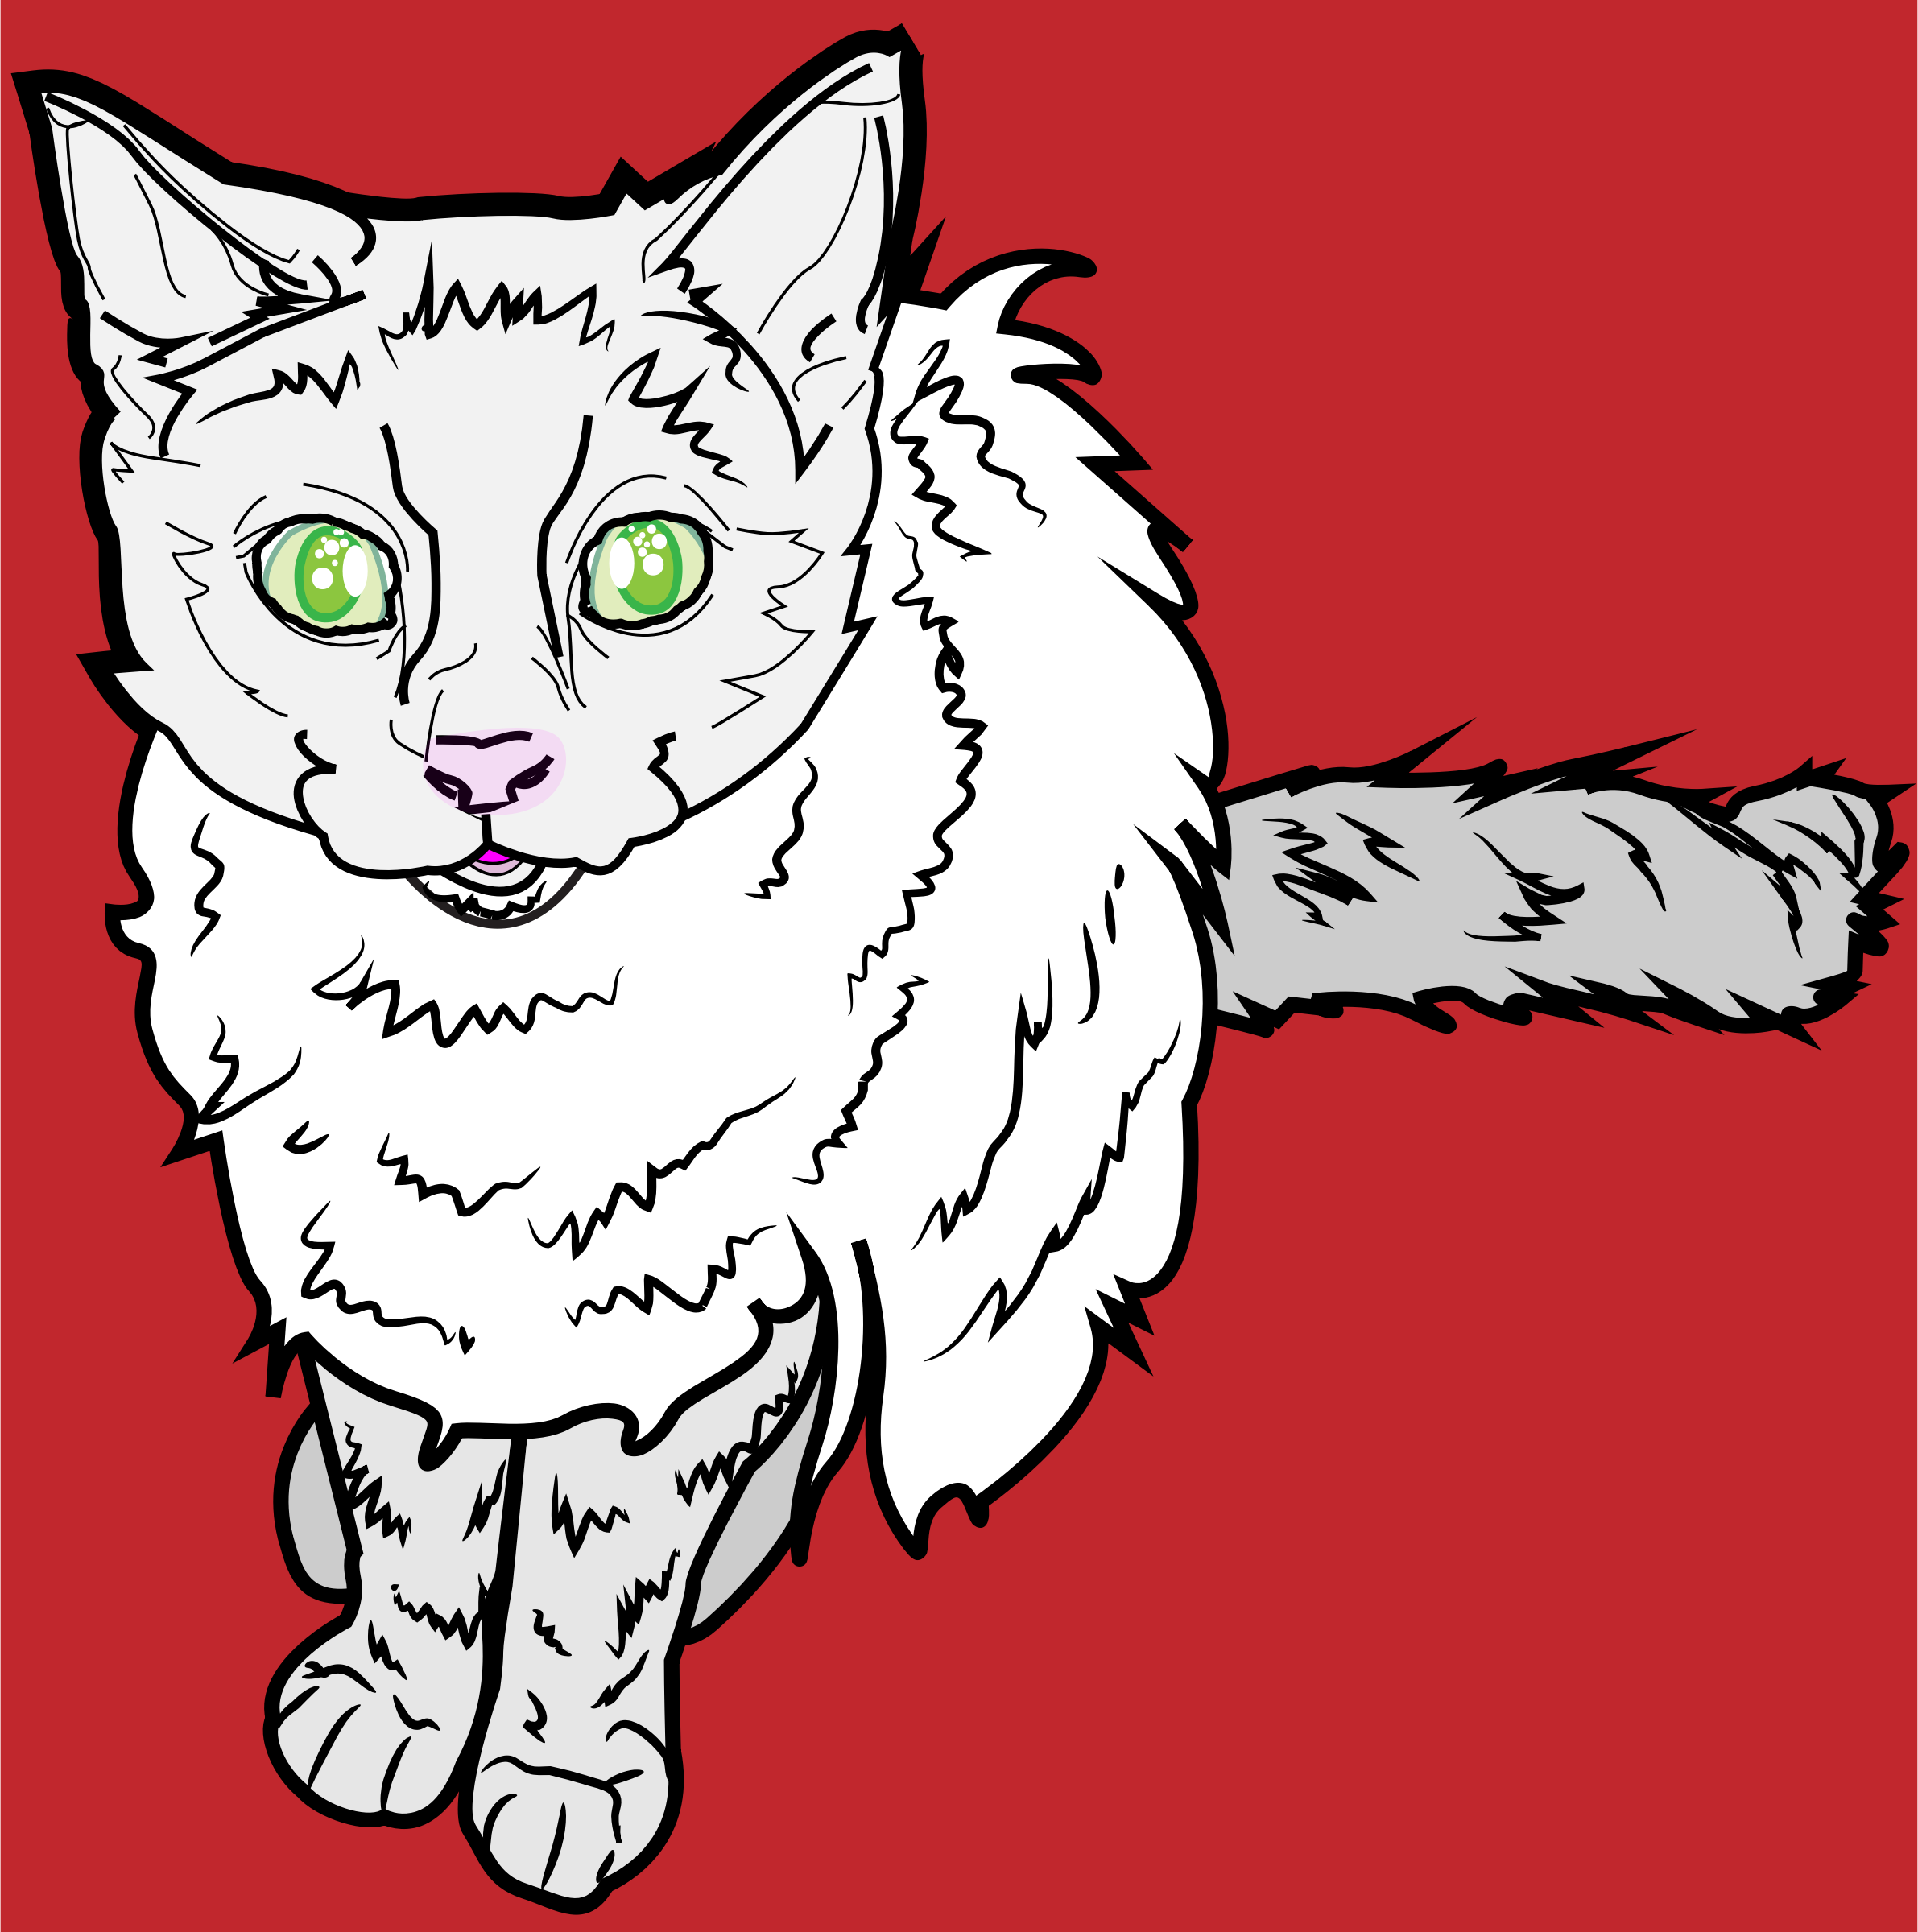 White Cat on Red Background  by jpneok